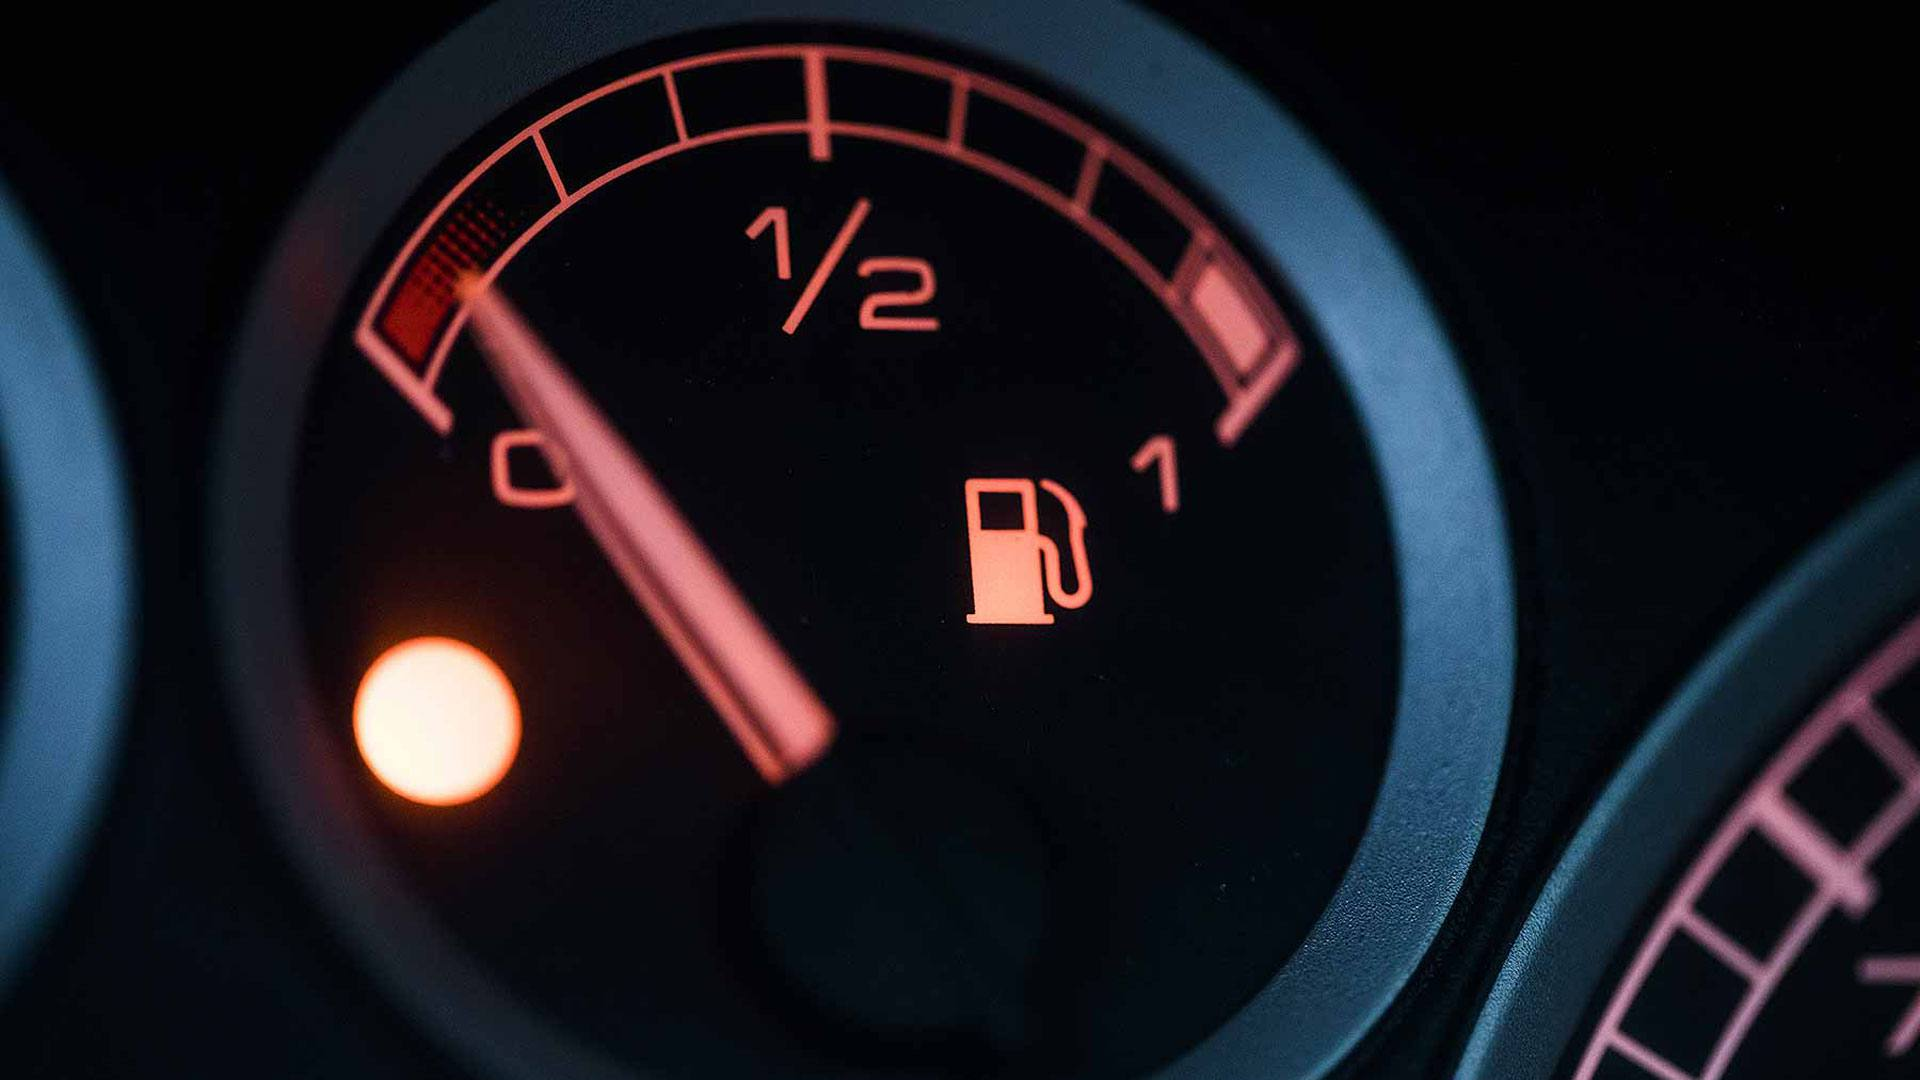 Is It Illegal to Run Out of Fuel on The Motorway?